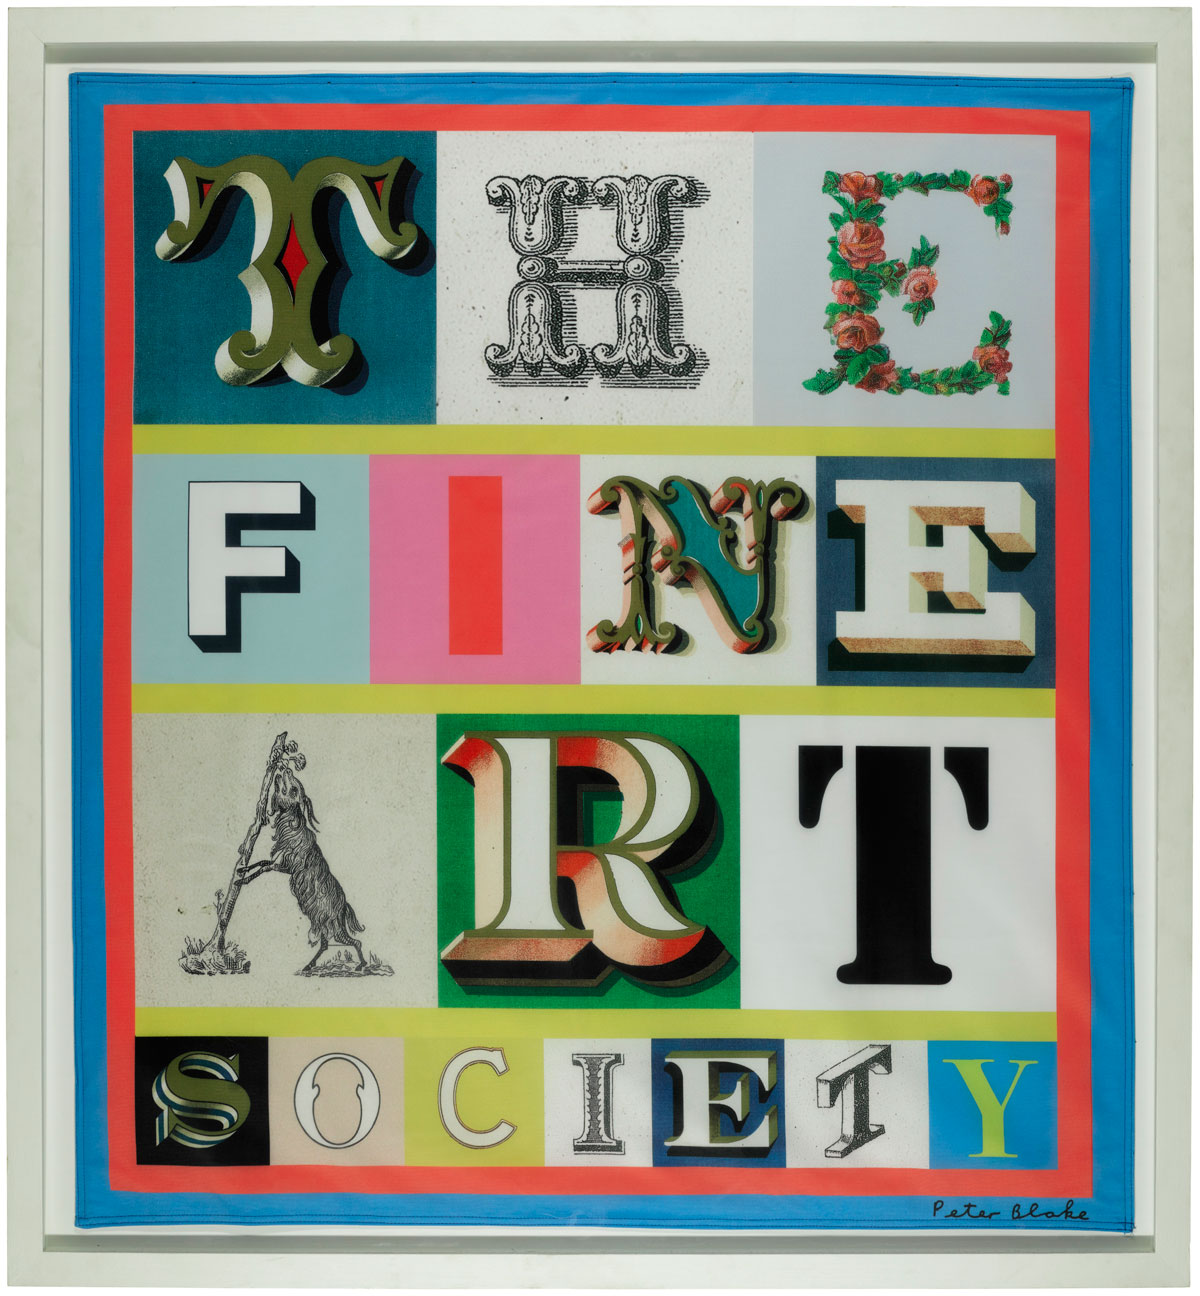 https://www.artsandcollections.com/wp-content/uploads/2018/12/The-Fine-Art-Society-Celebrates-its-History-at-Sotheby's-Auction.jpg